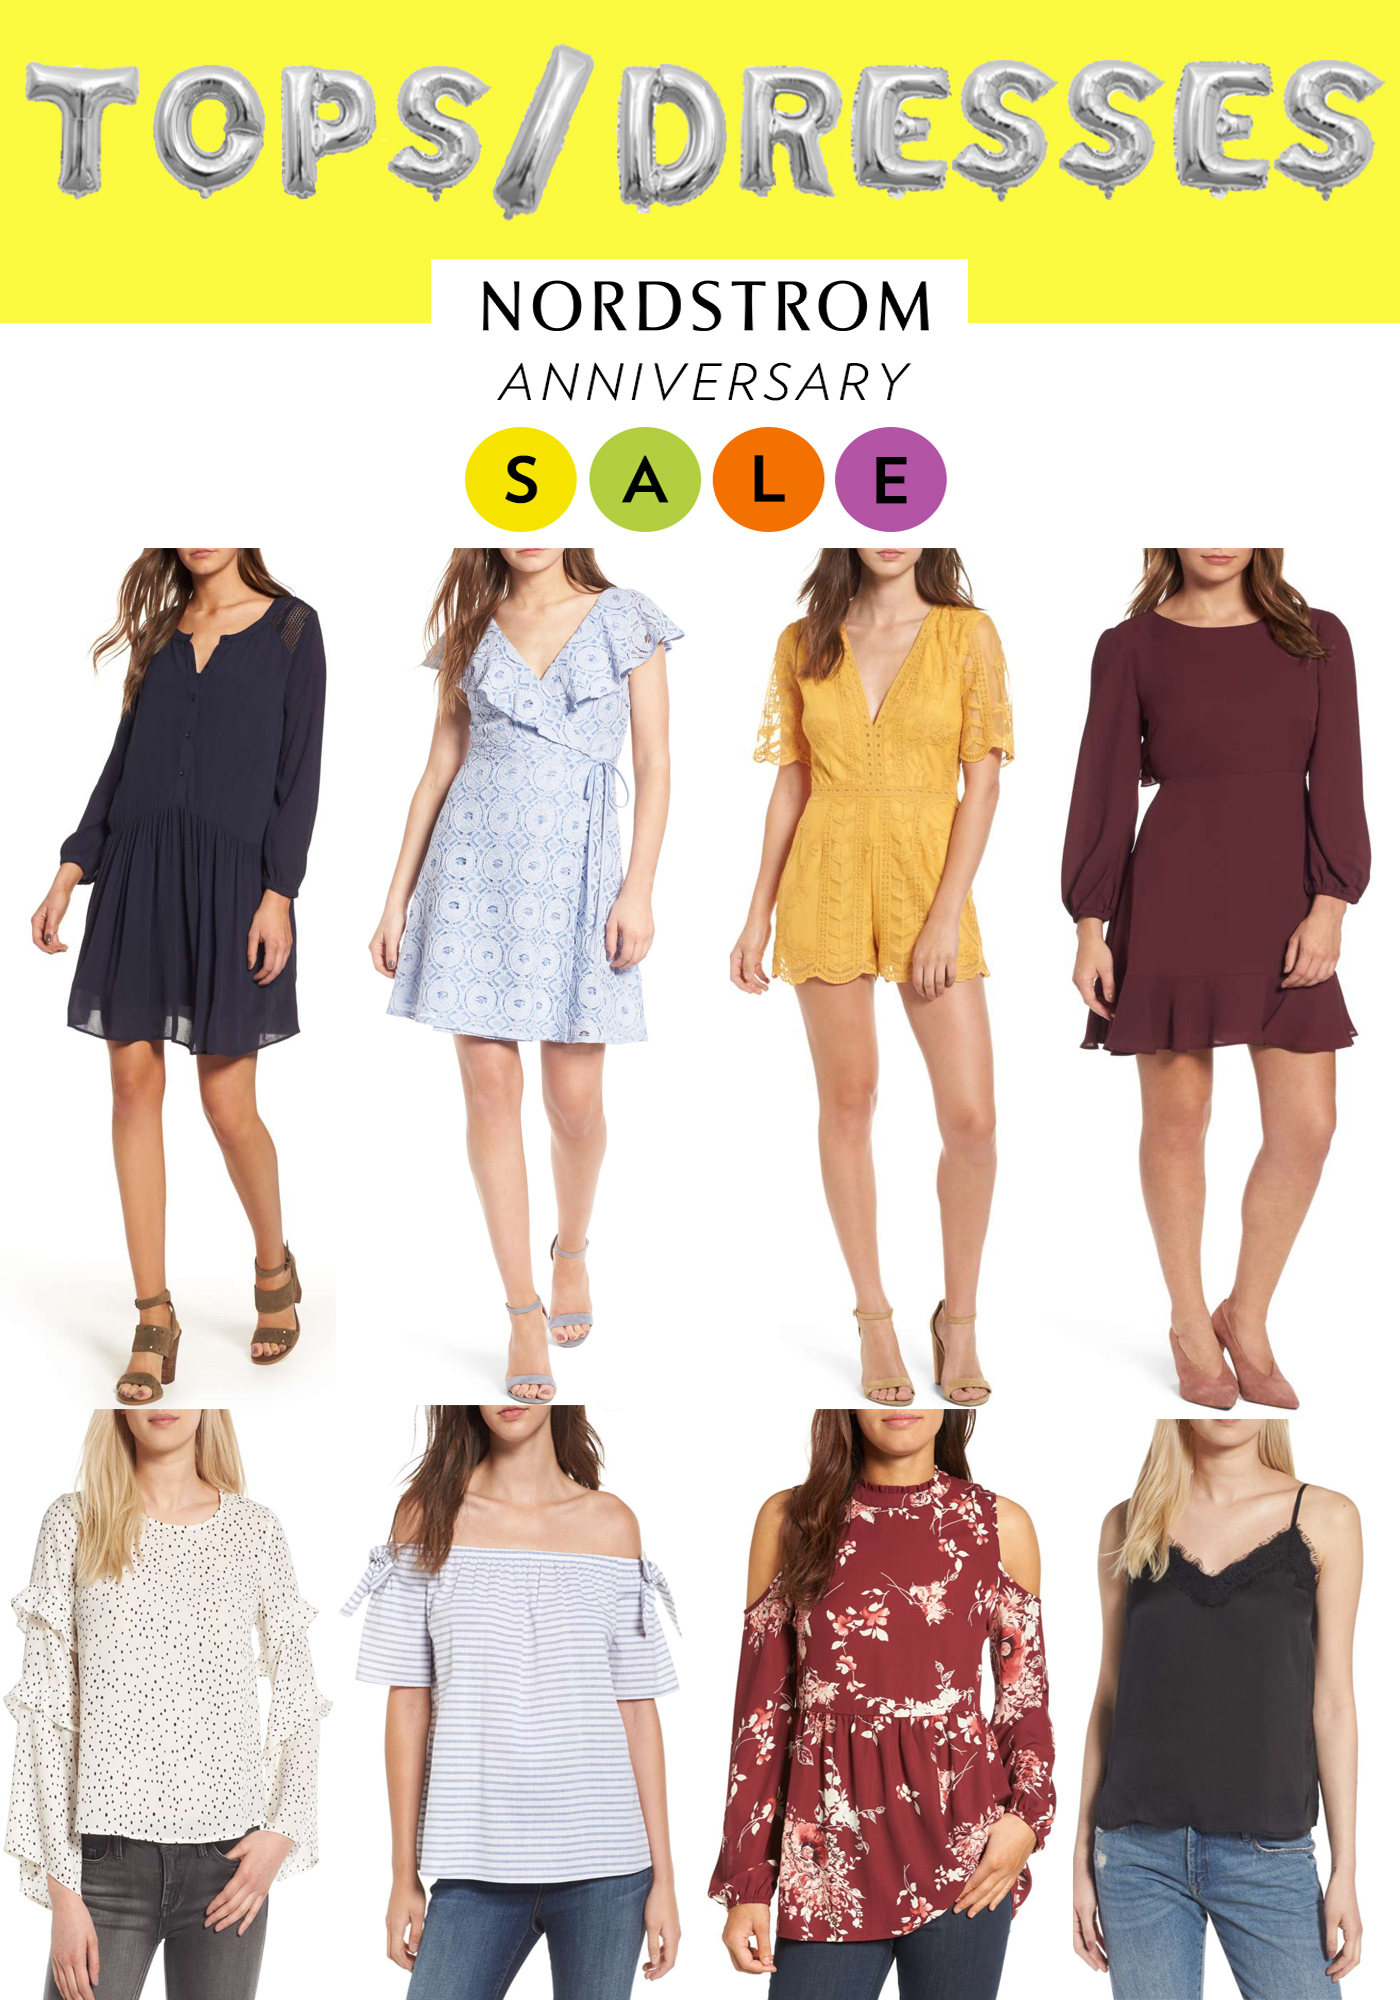 606e27f84 Hot Items To Buy - Nordstrom Anniversary Sale Edition - Oh What A ...